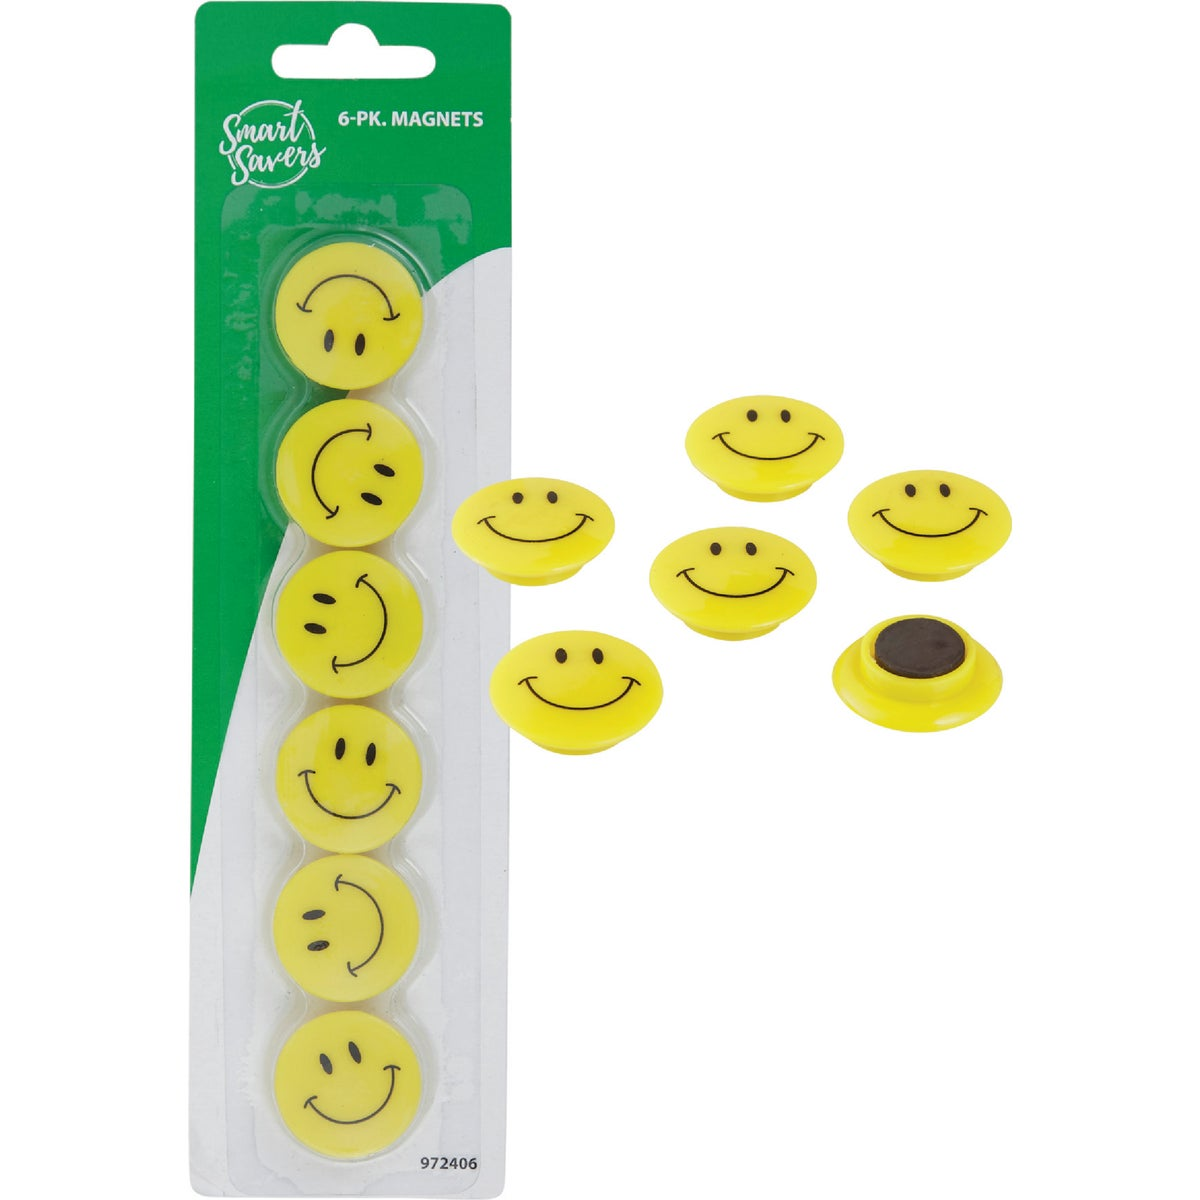 6PK MAGNETS - 10236 by Do it Best